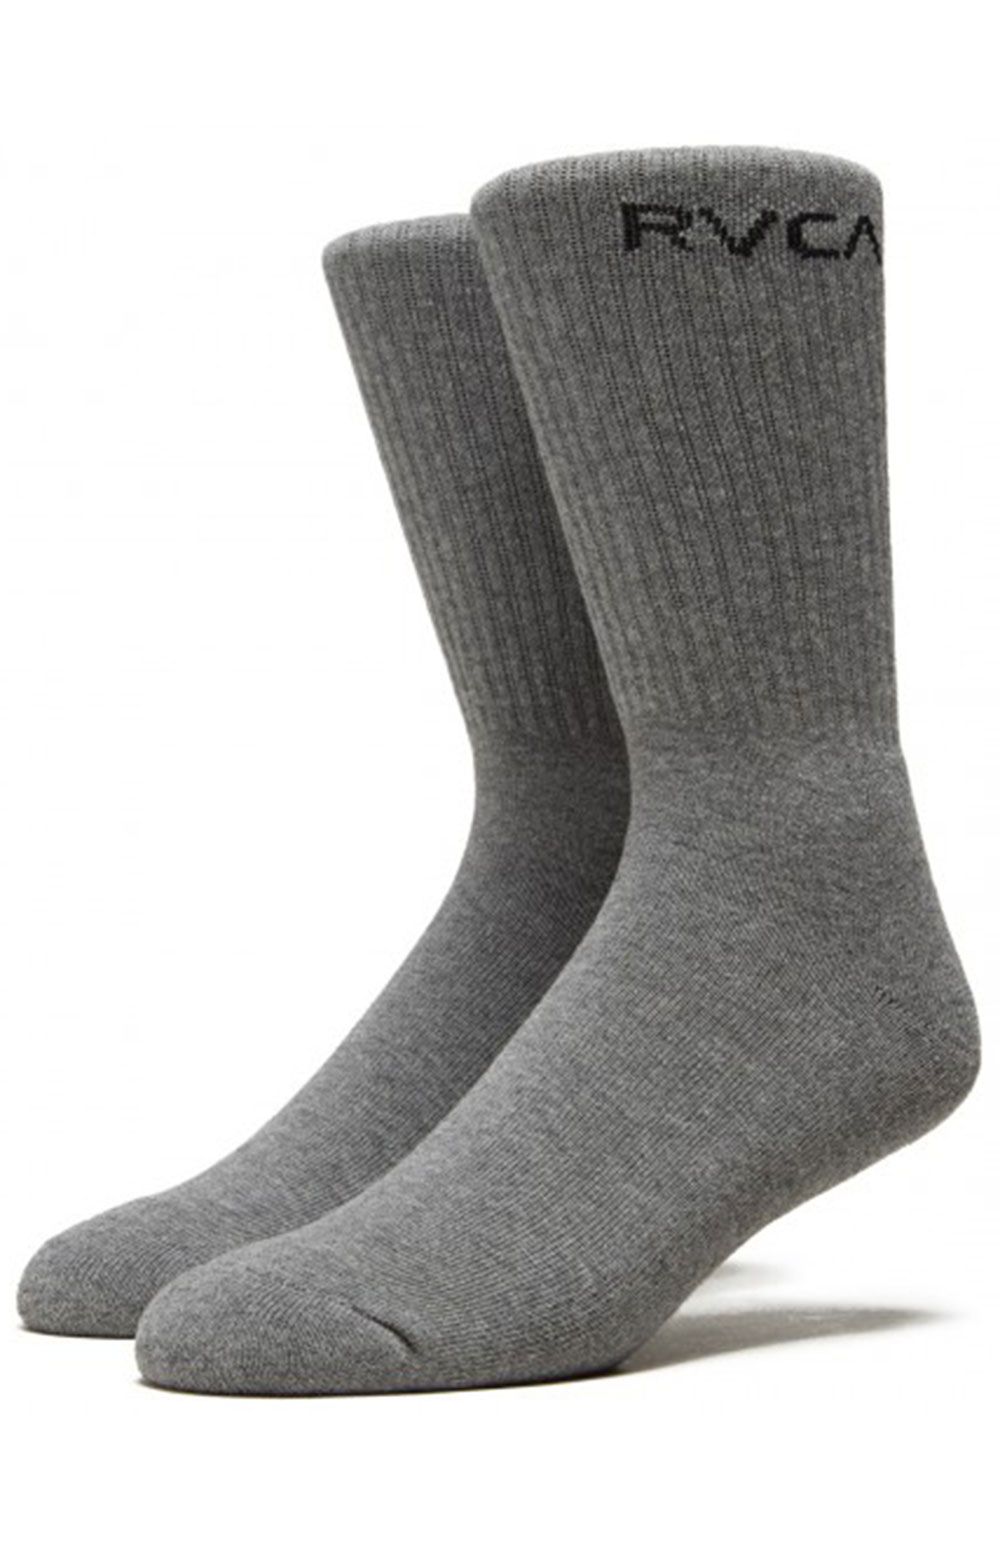 Union Square Socks - Heather Grey